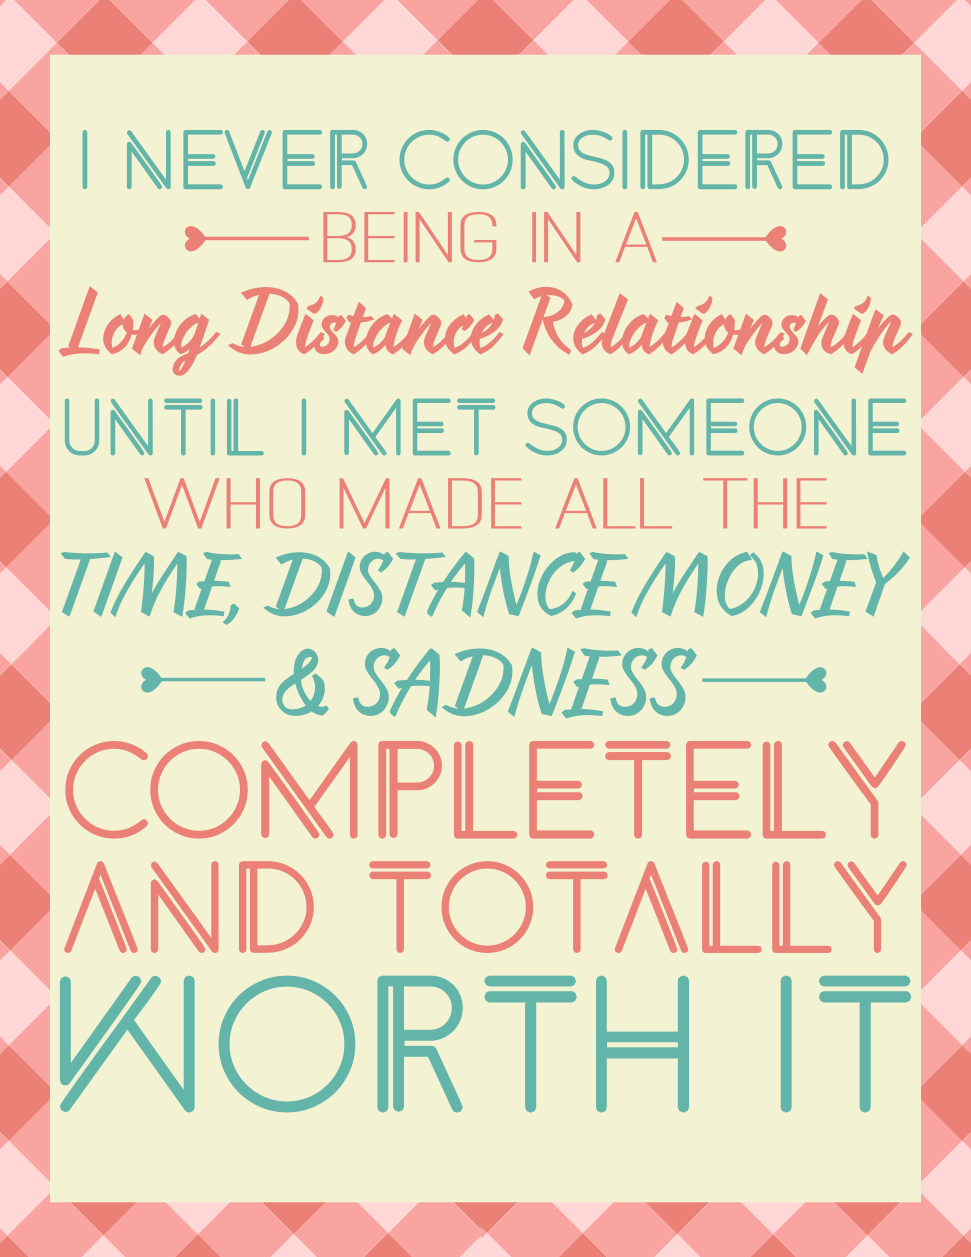 Long Distance Relationships Quotes (69 quotes)